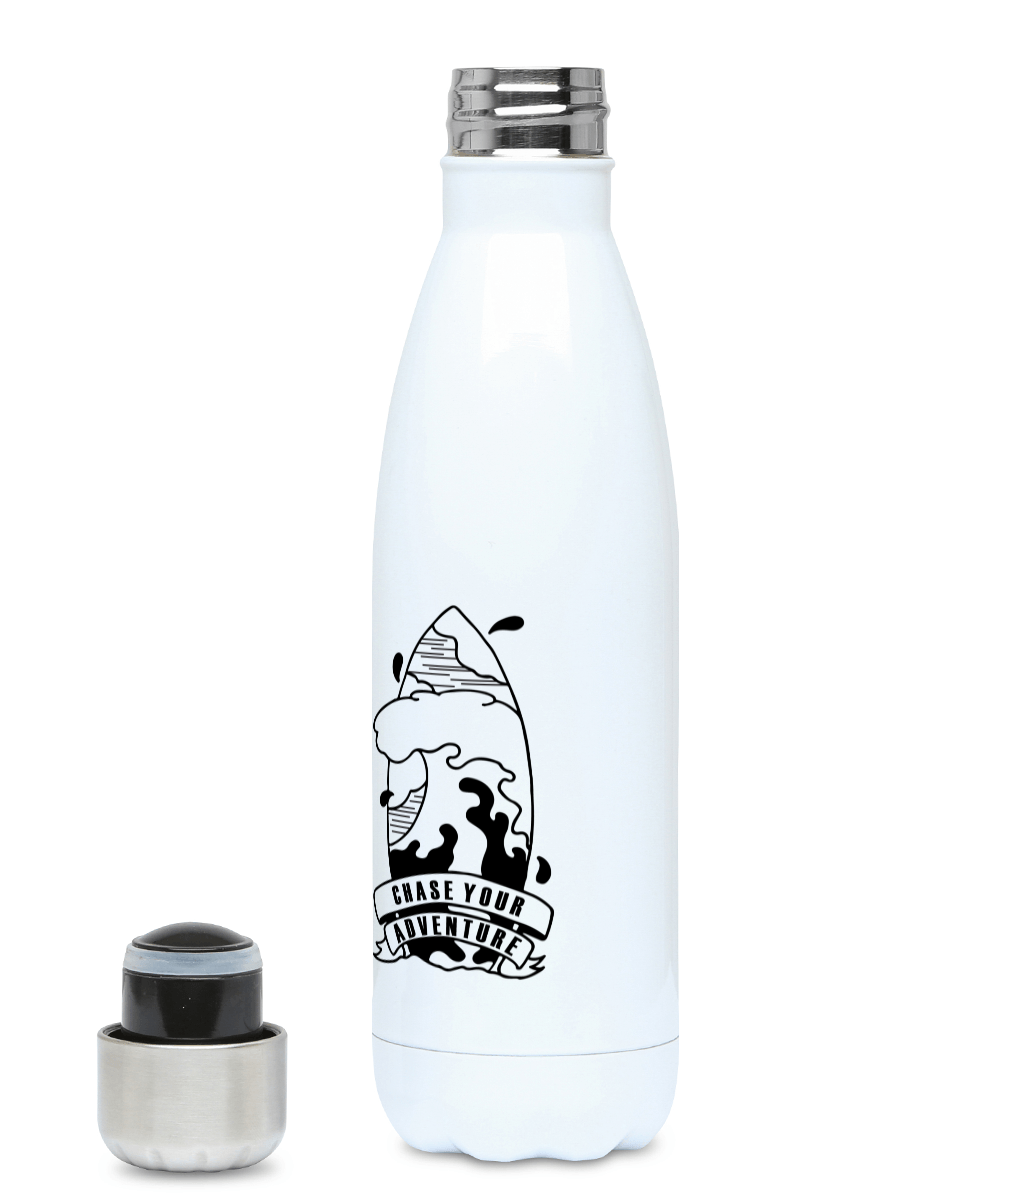 Chase Your Adventure - Surf Edition - Plastic Free 500ml Water Bottle, Suggested Products, Pen and Ink Studios Adventure Clothing